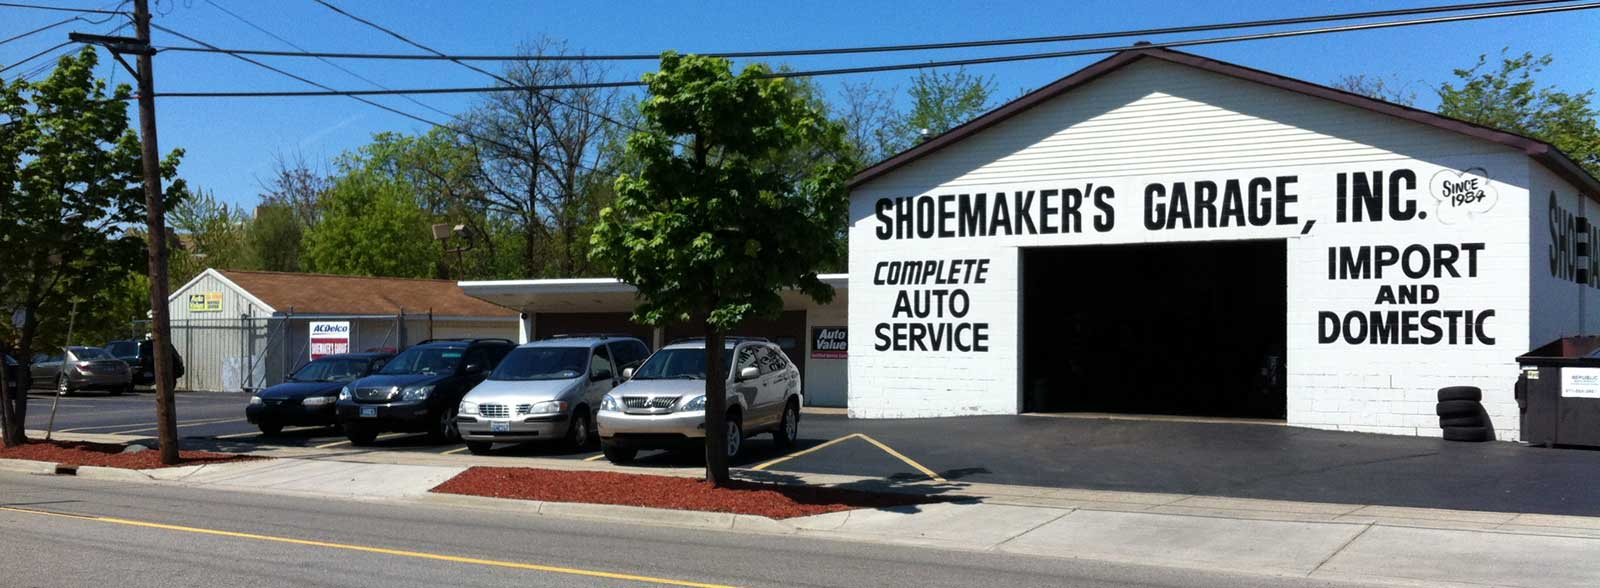 Kalamazoo Auto Repair Services